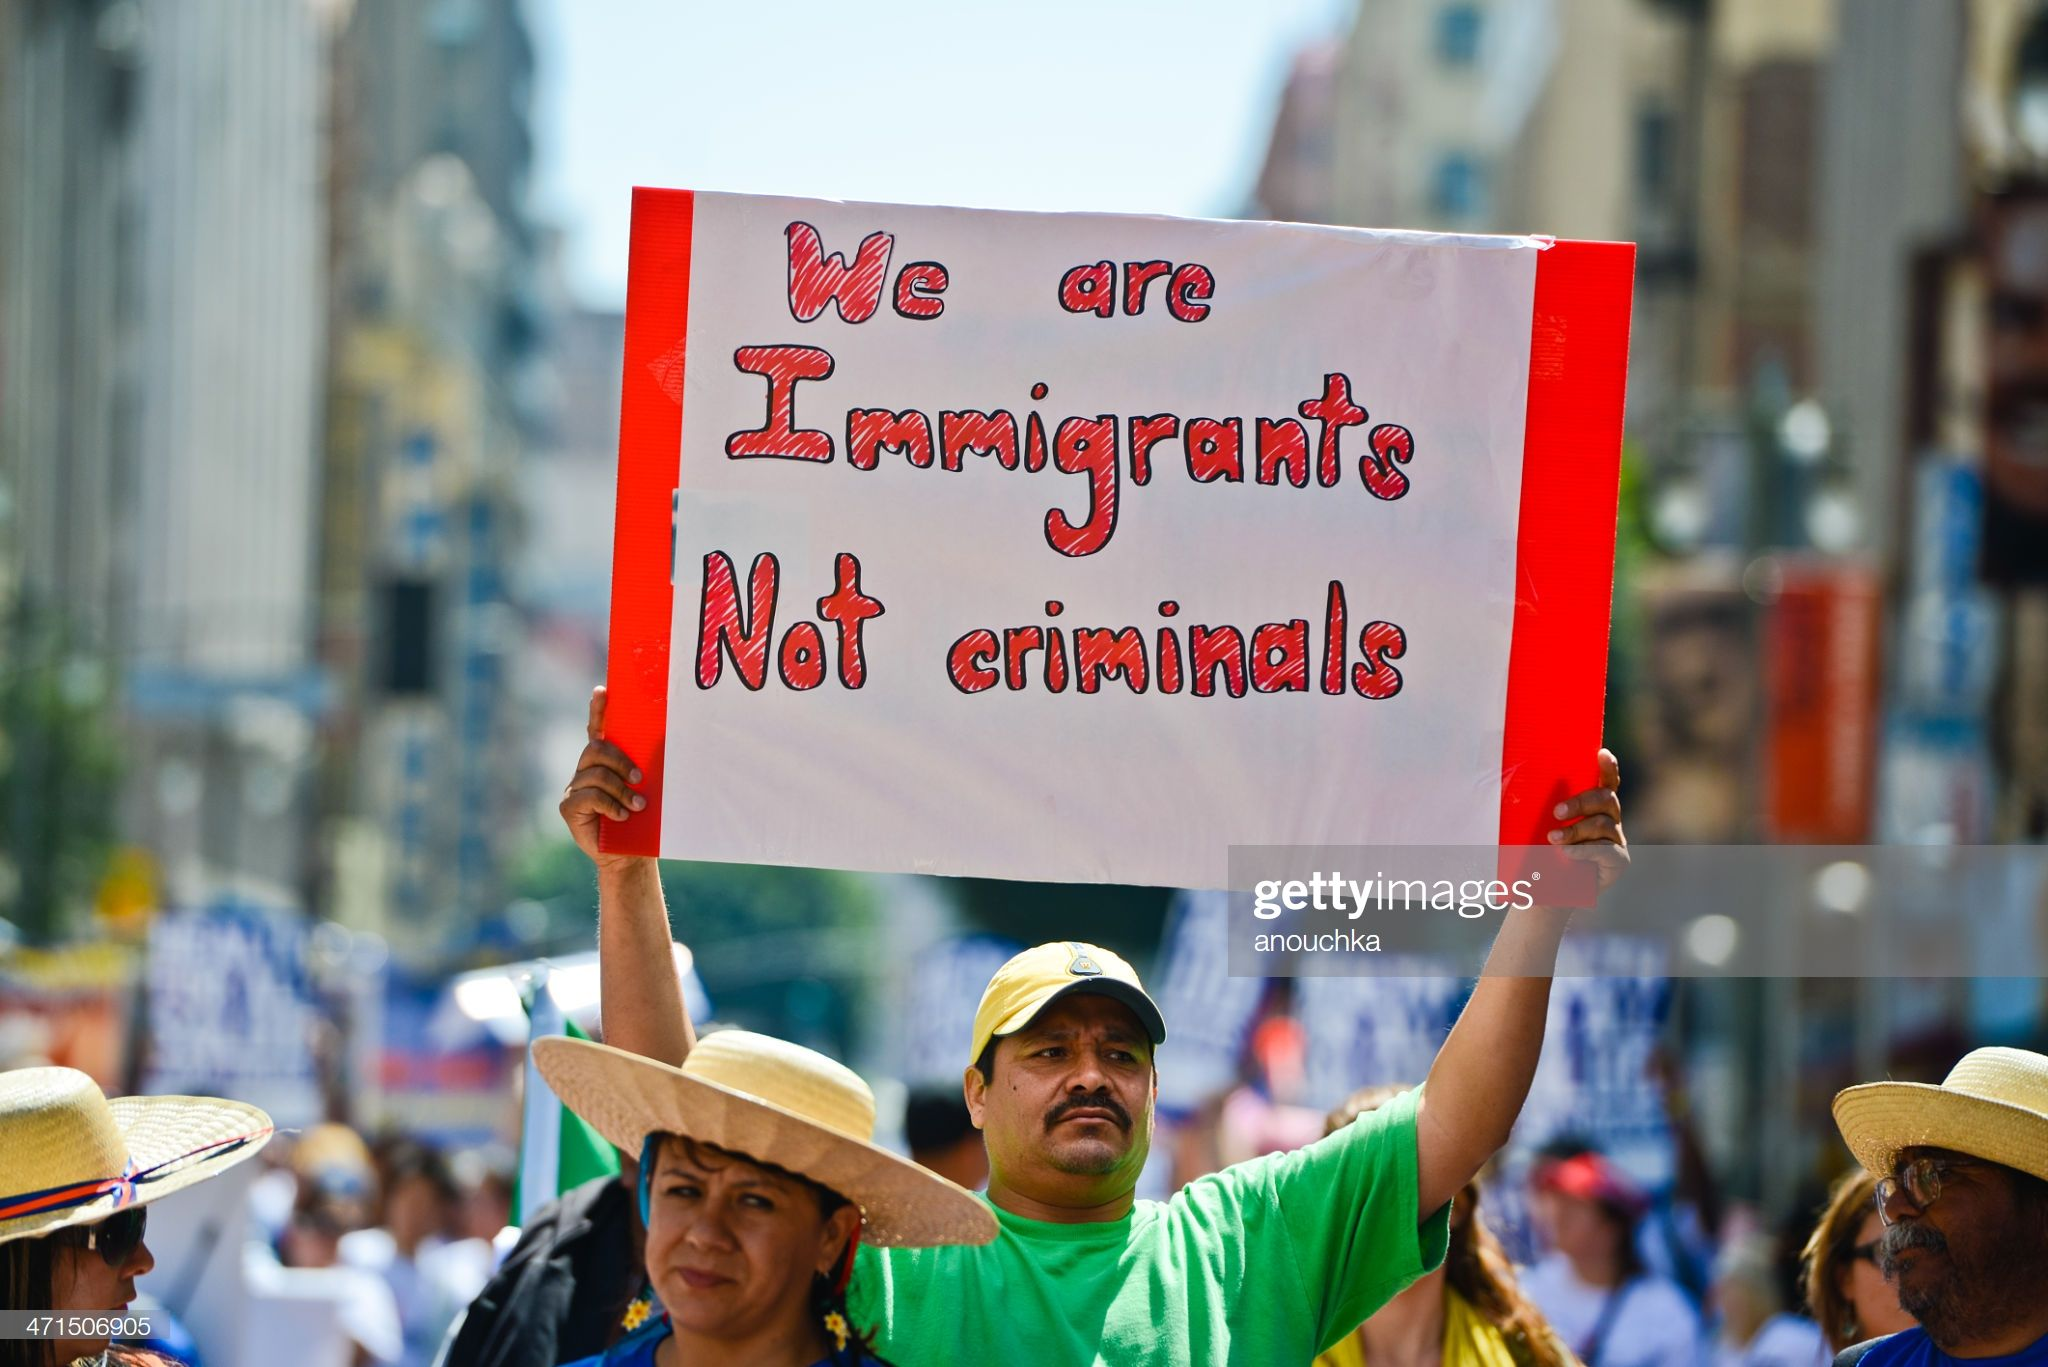 Pin by Nigar Sani on thesis (With images) | Immigration ...